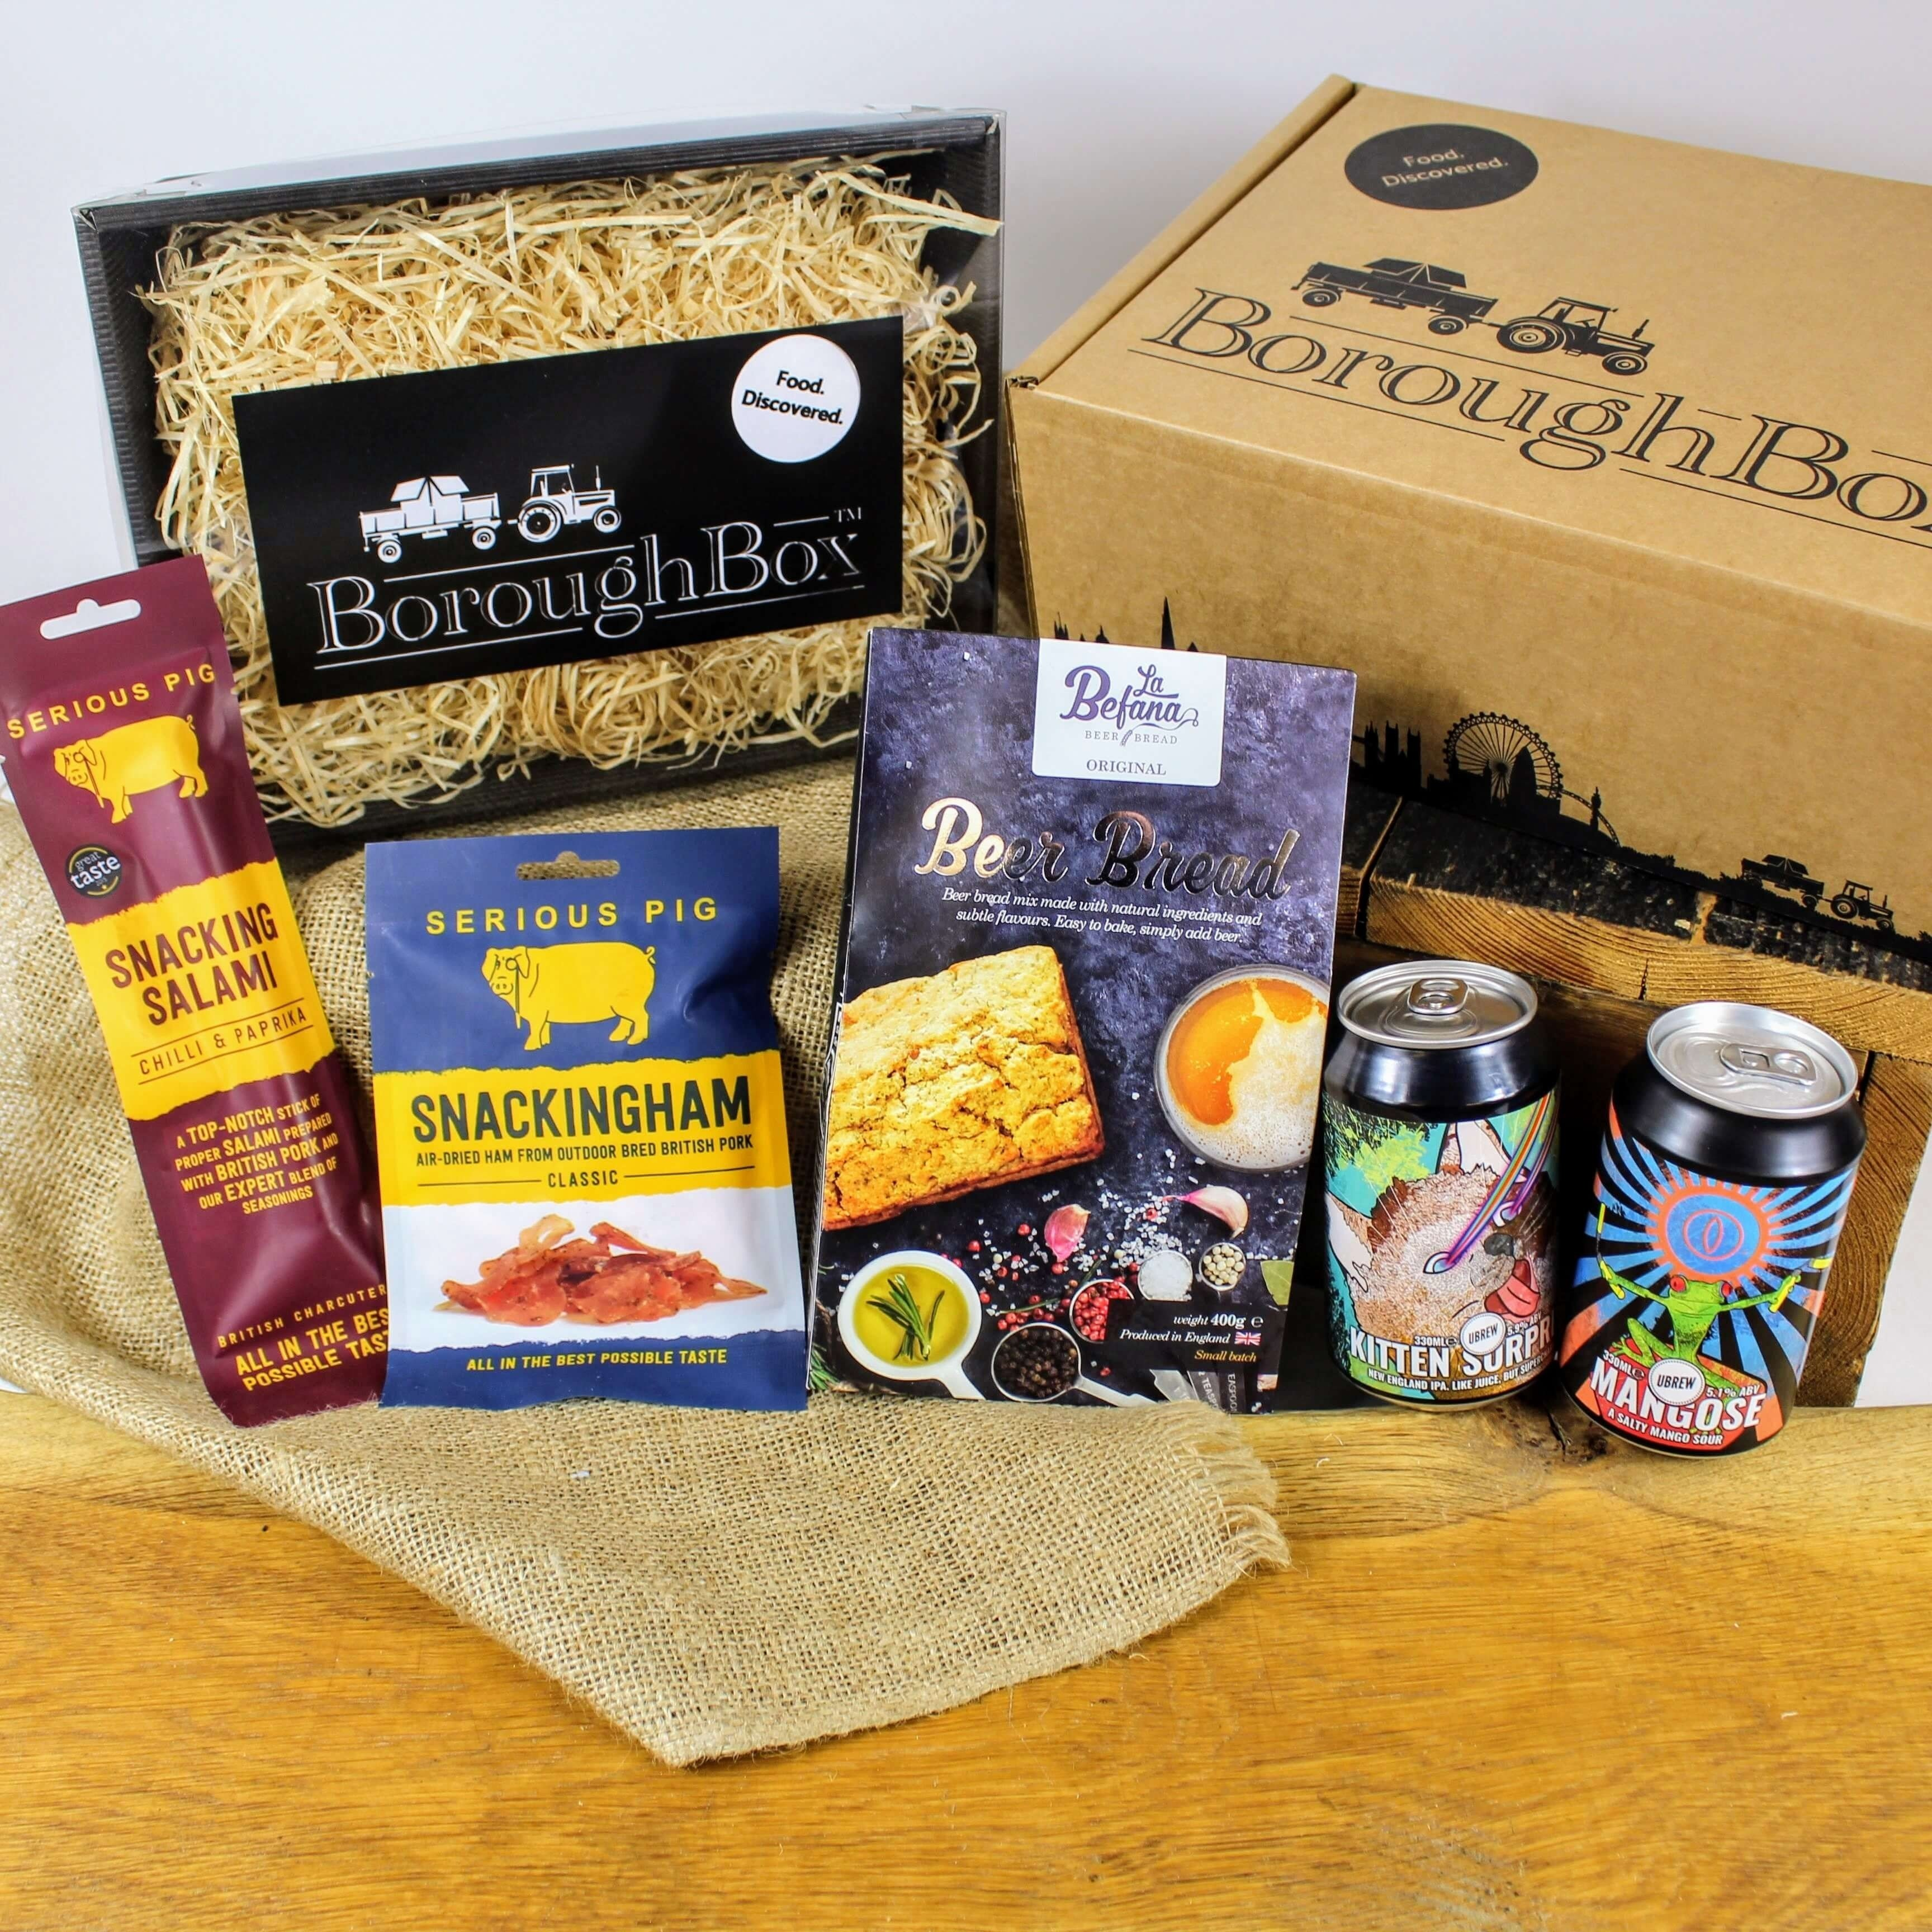 10 Elegant Food Gift Ideas For Men gifts for men man box craft beer meat boroughbox 2020